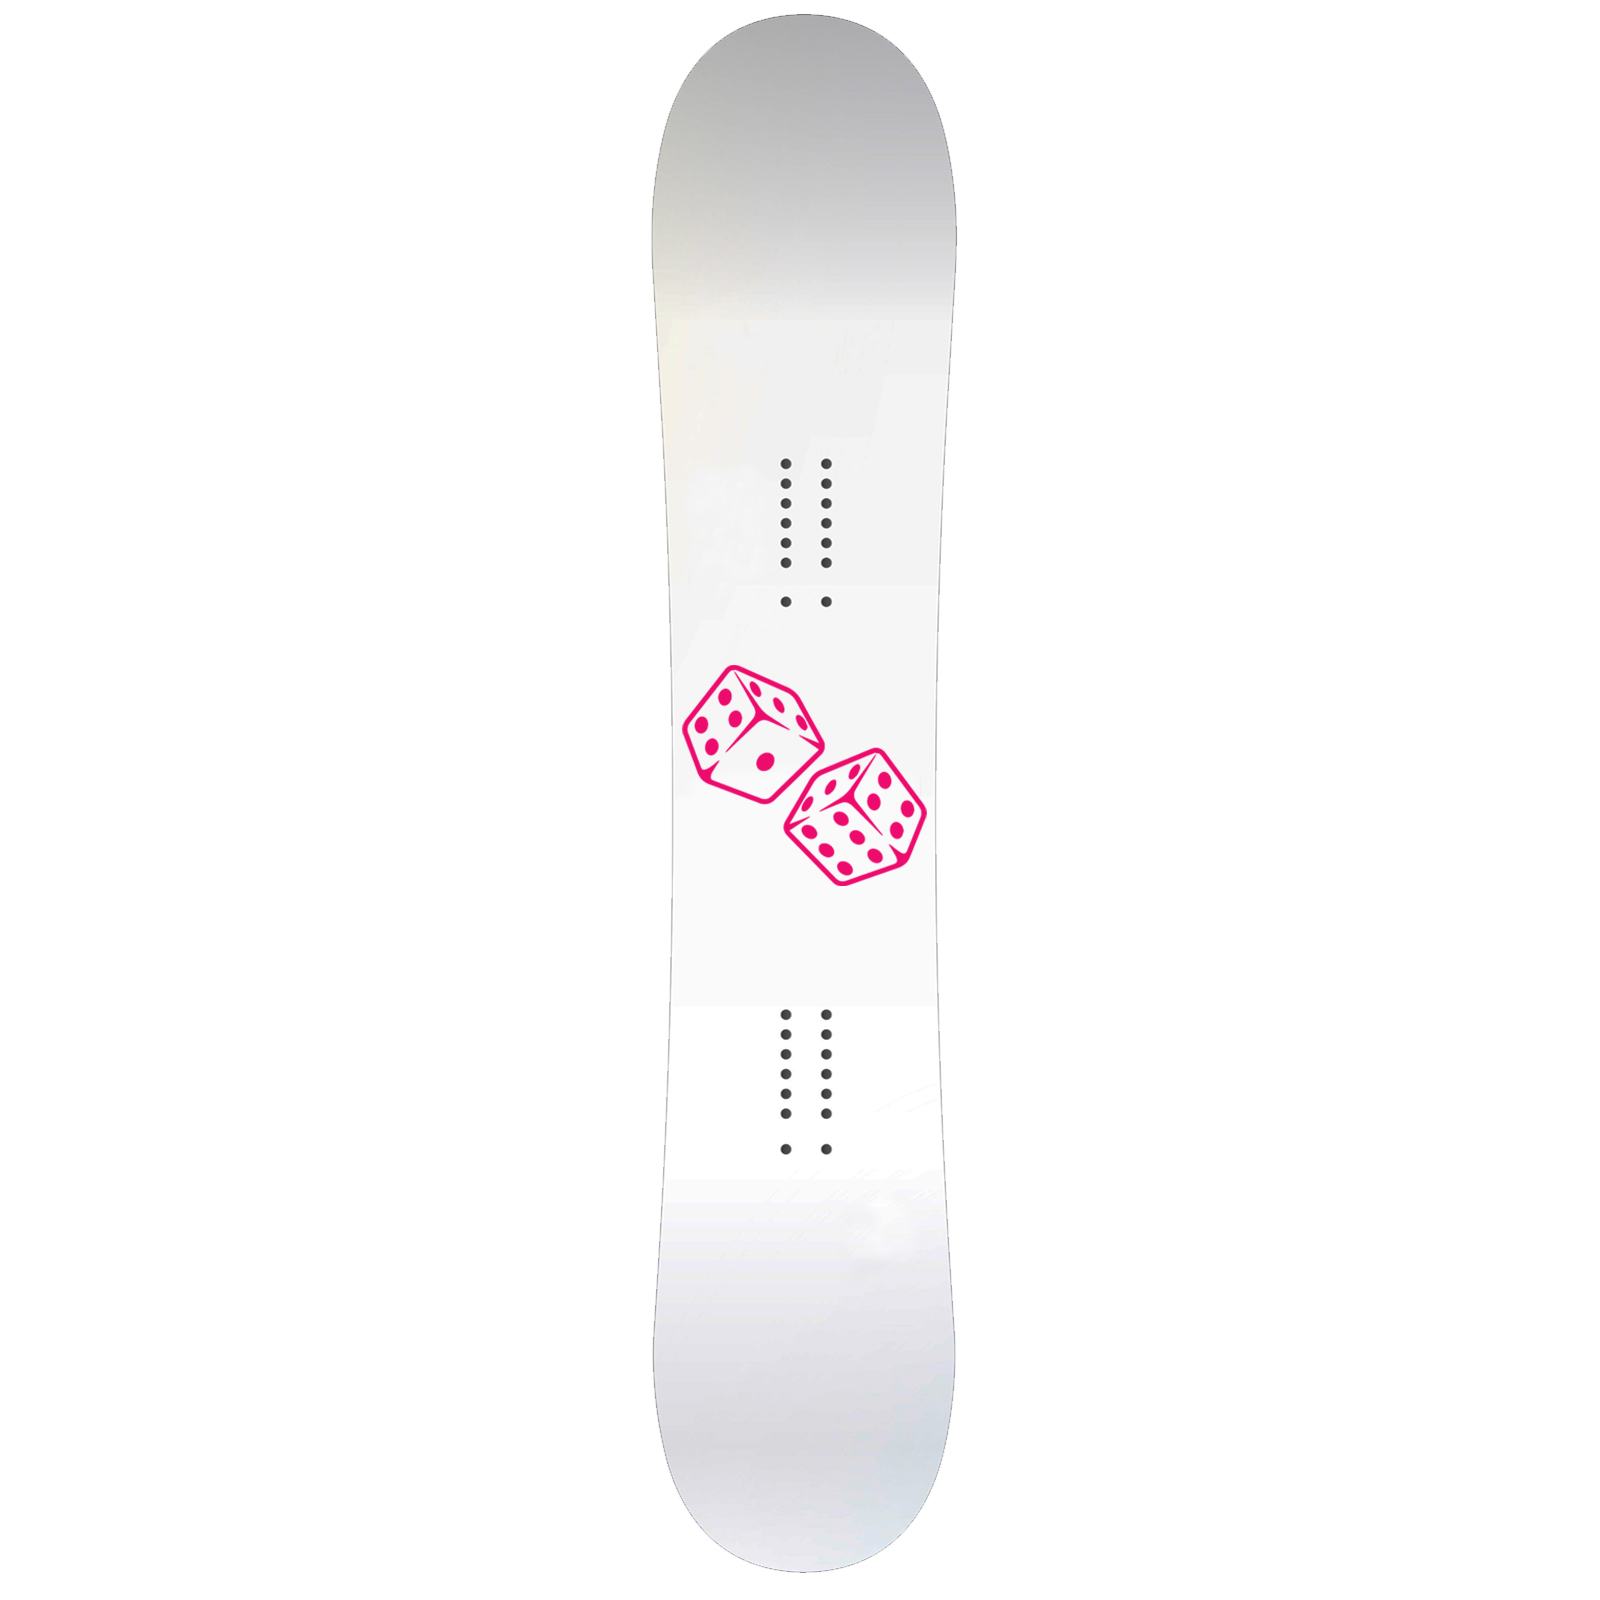 Rolling Dice Snowboard Sticker All Weather Vinyl Decal